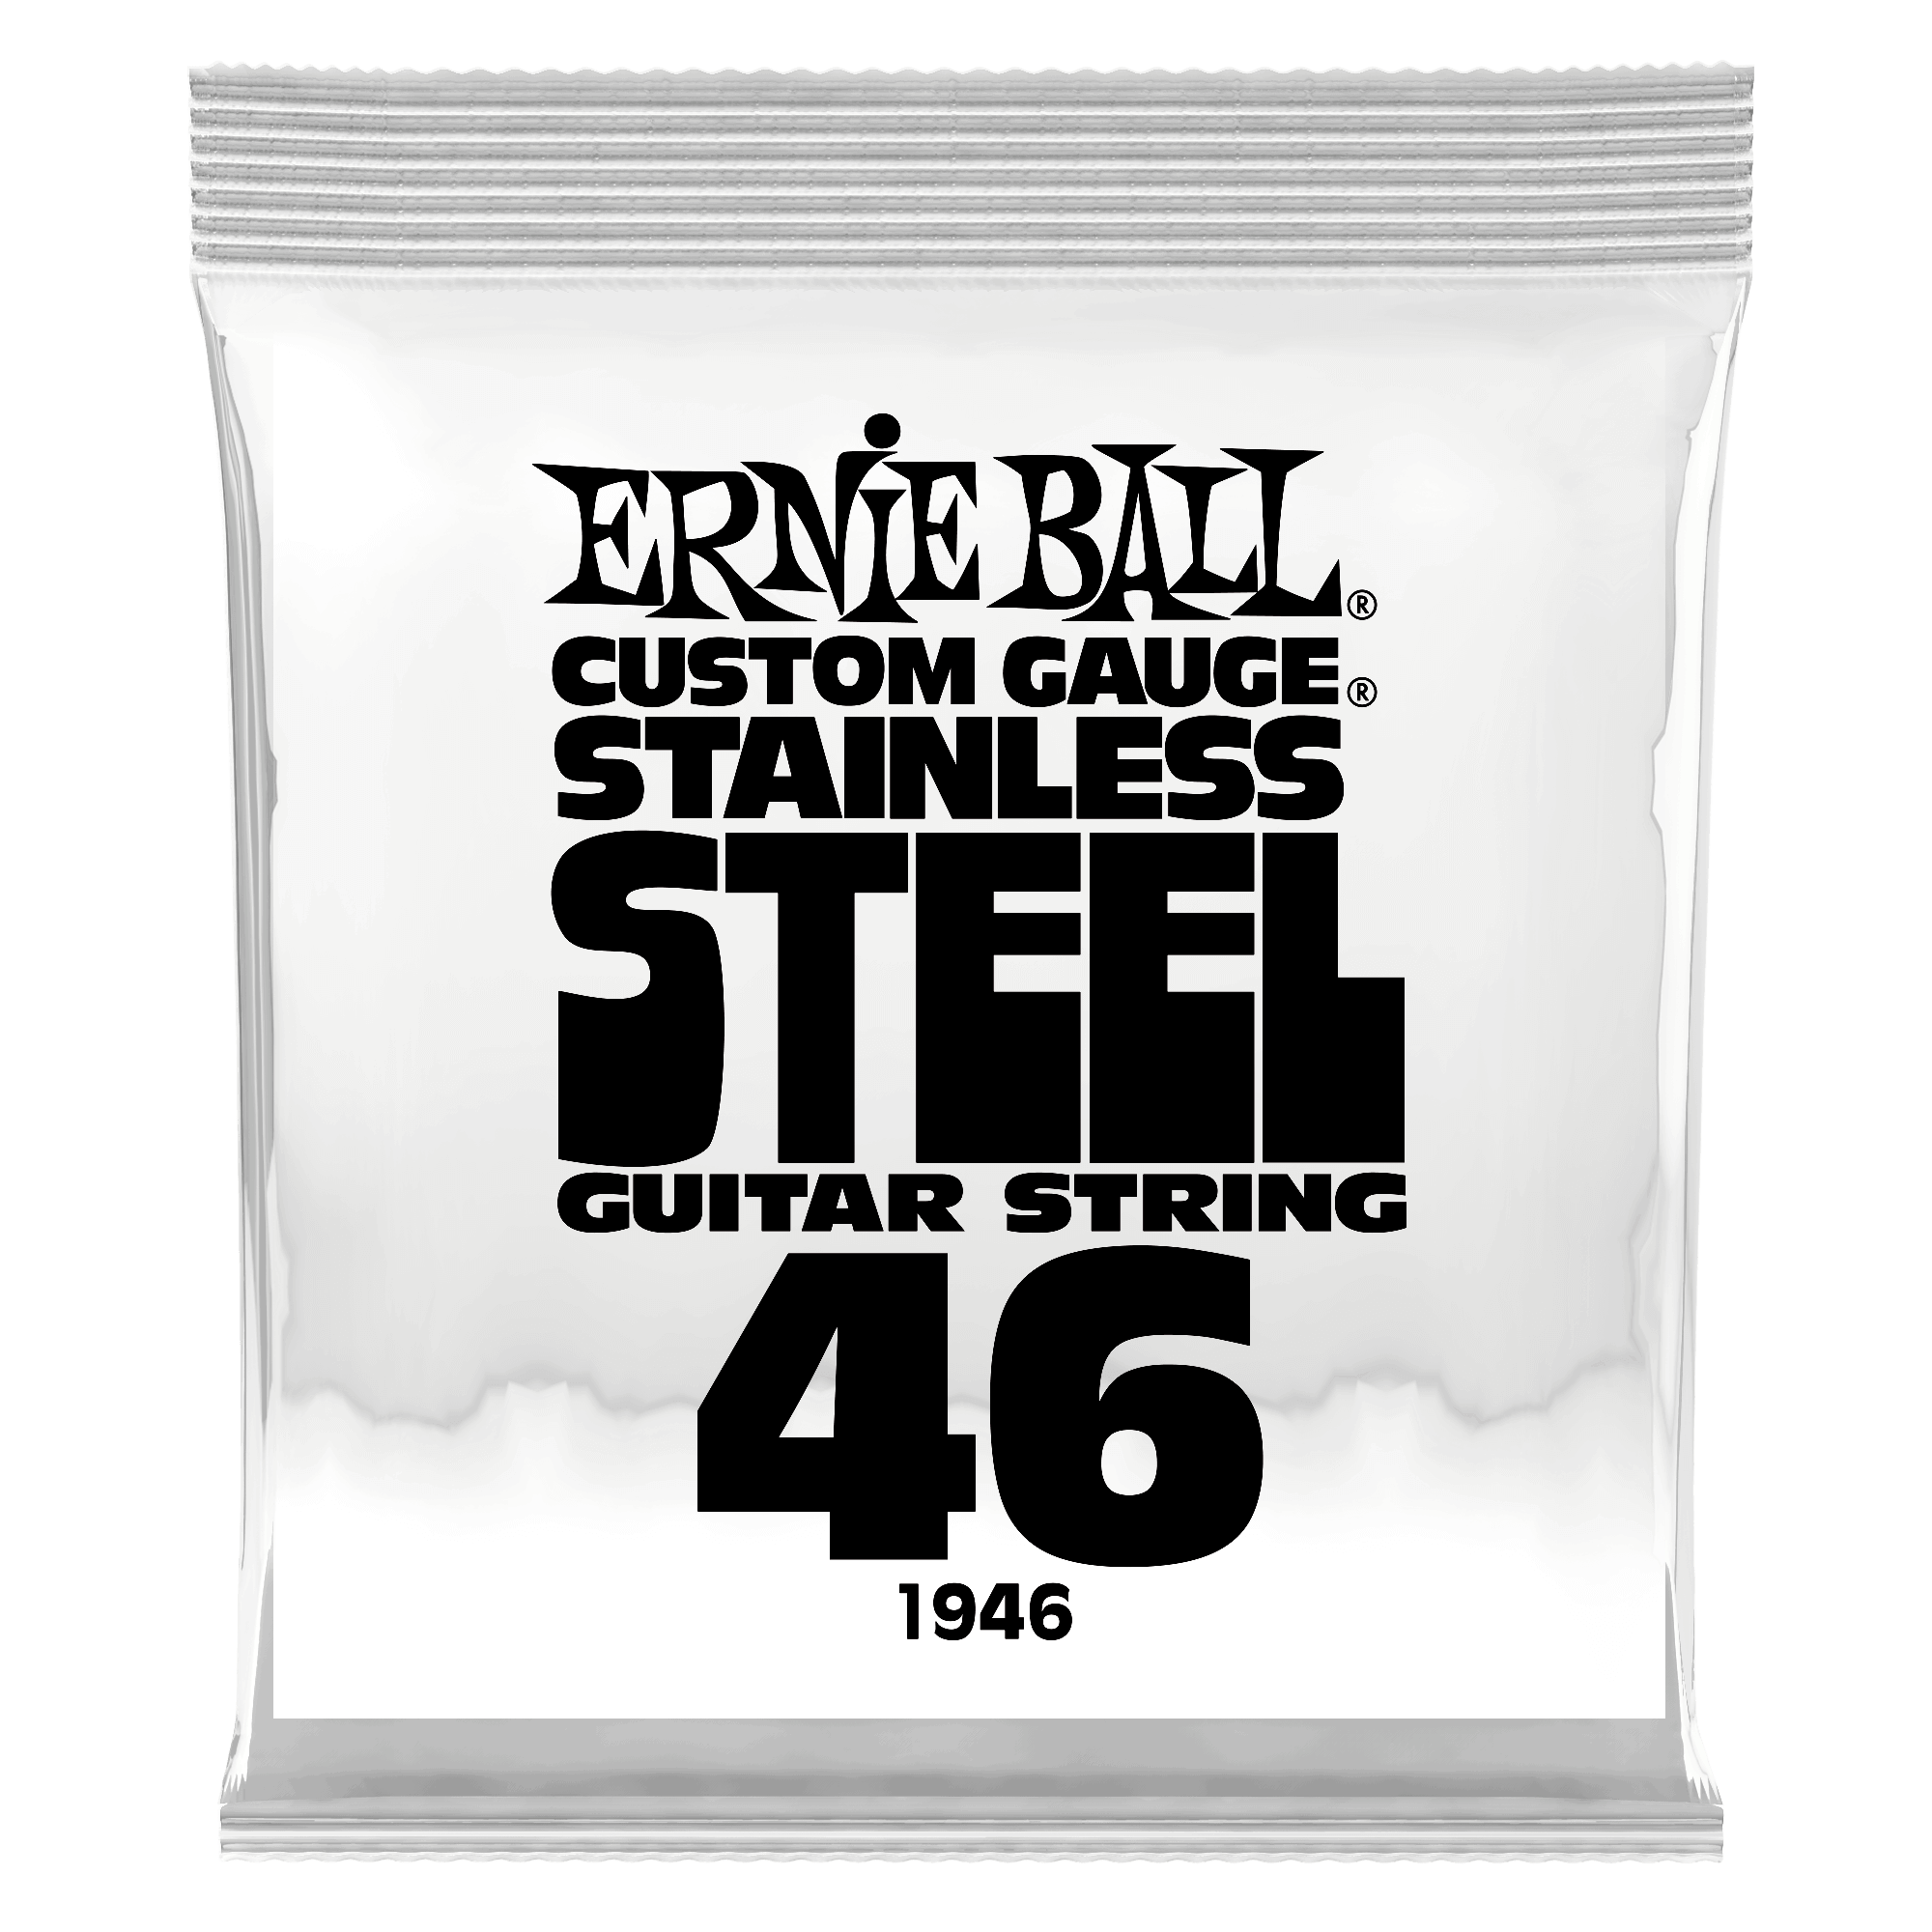 stainless steel wound electric guitar single strings ernie ball. Black Bedroom Furniture Sets. Home Design Ideas